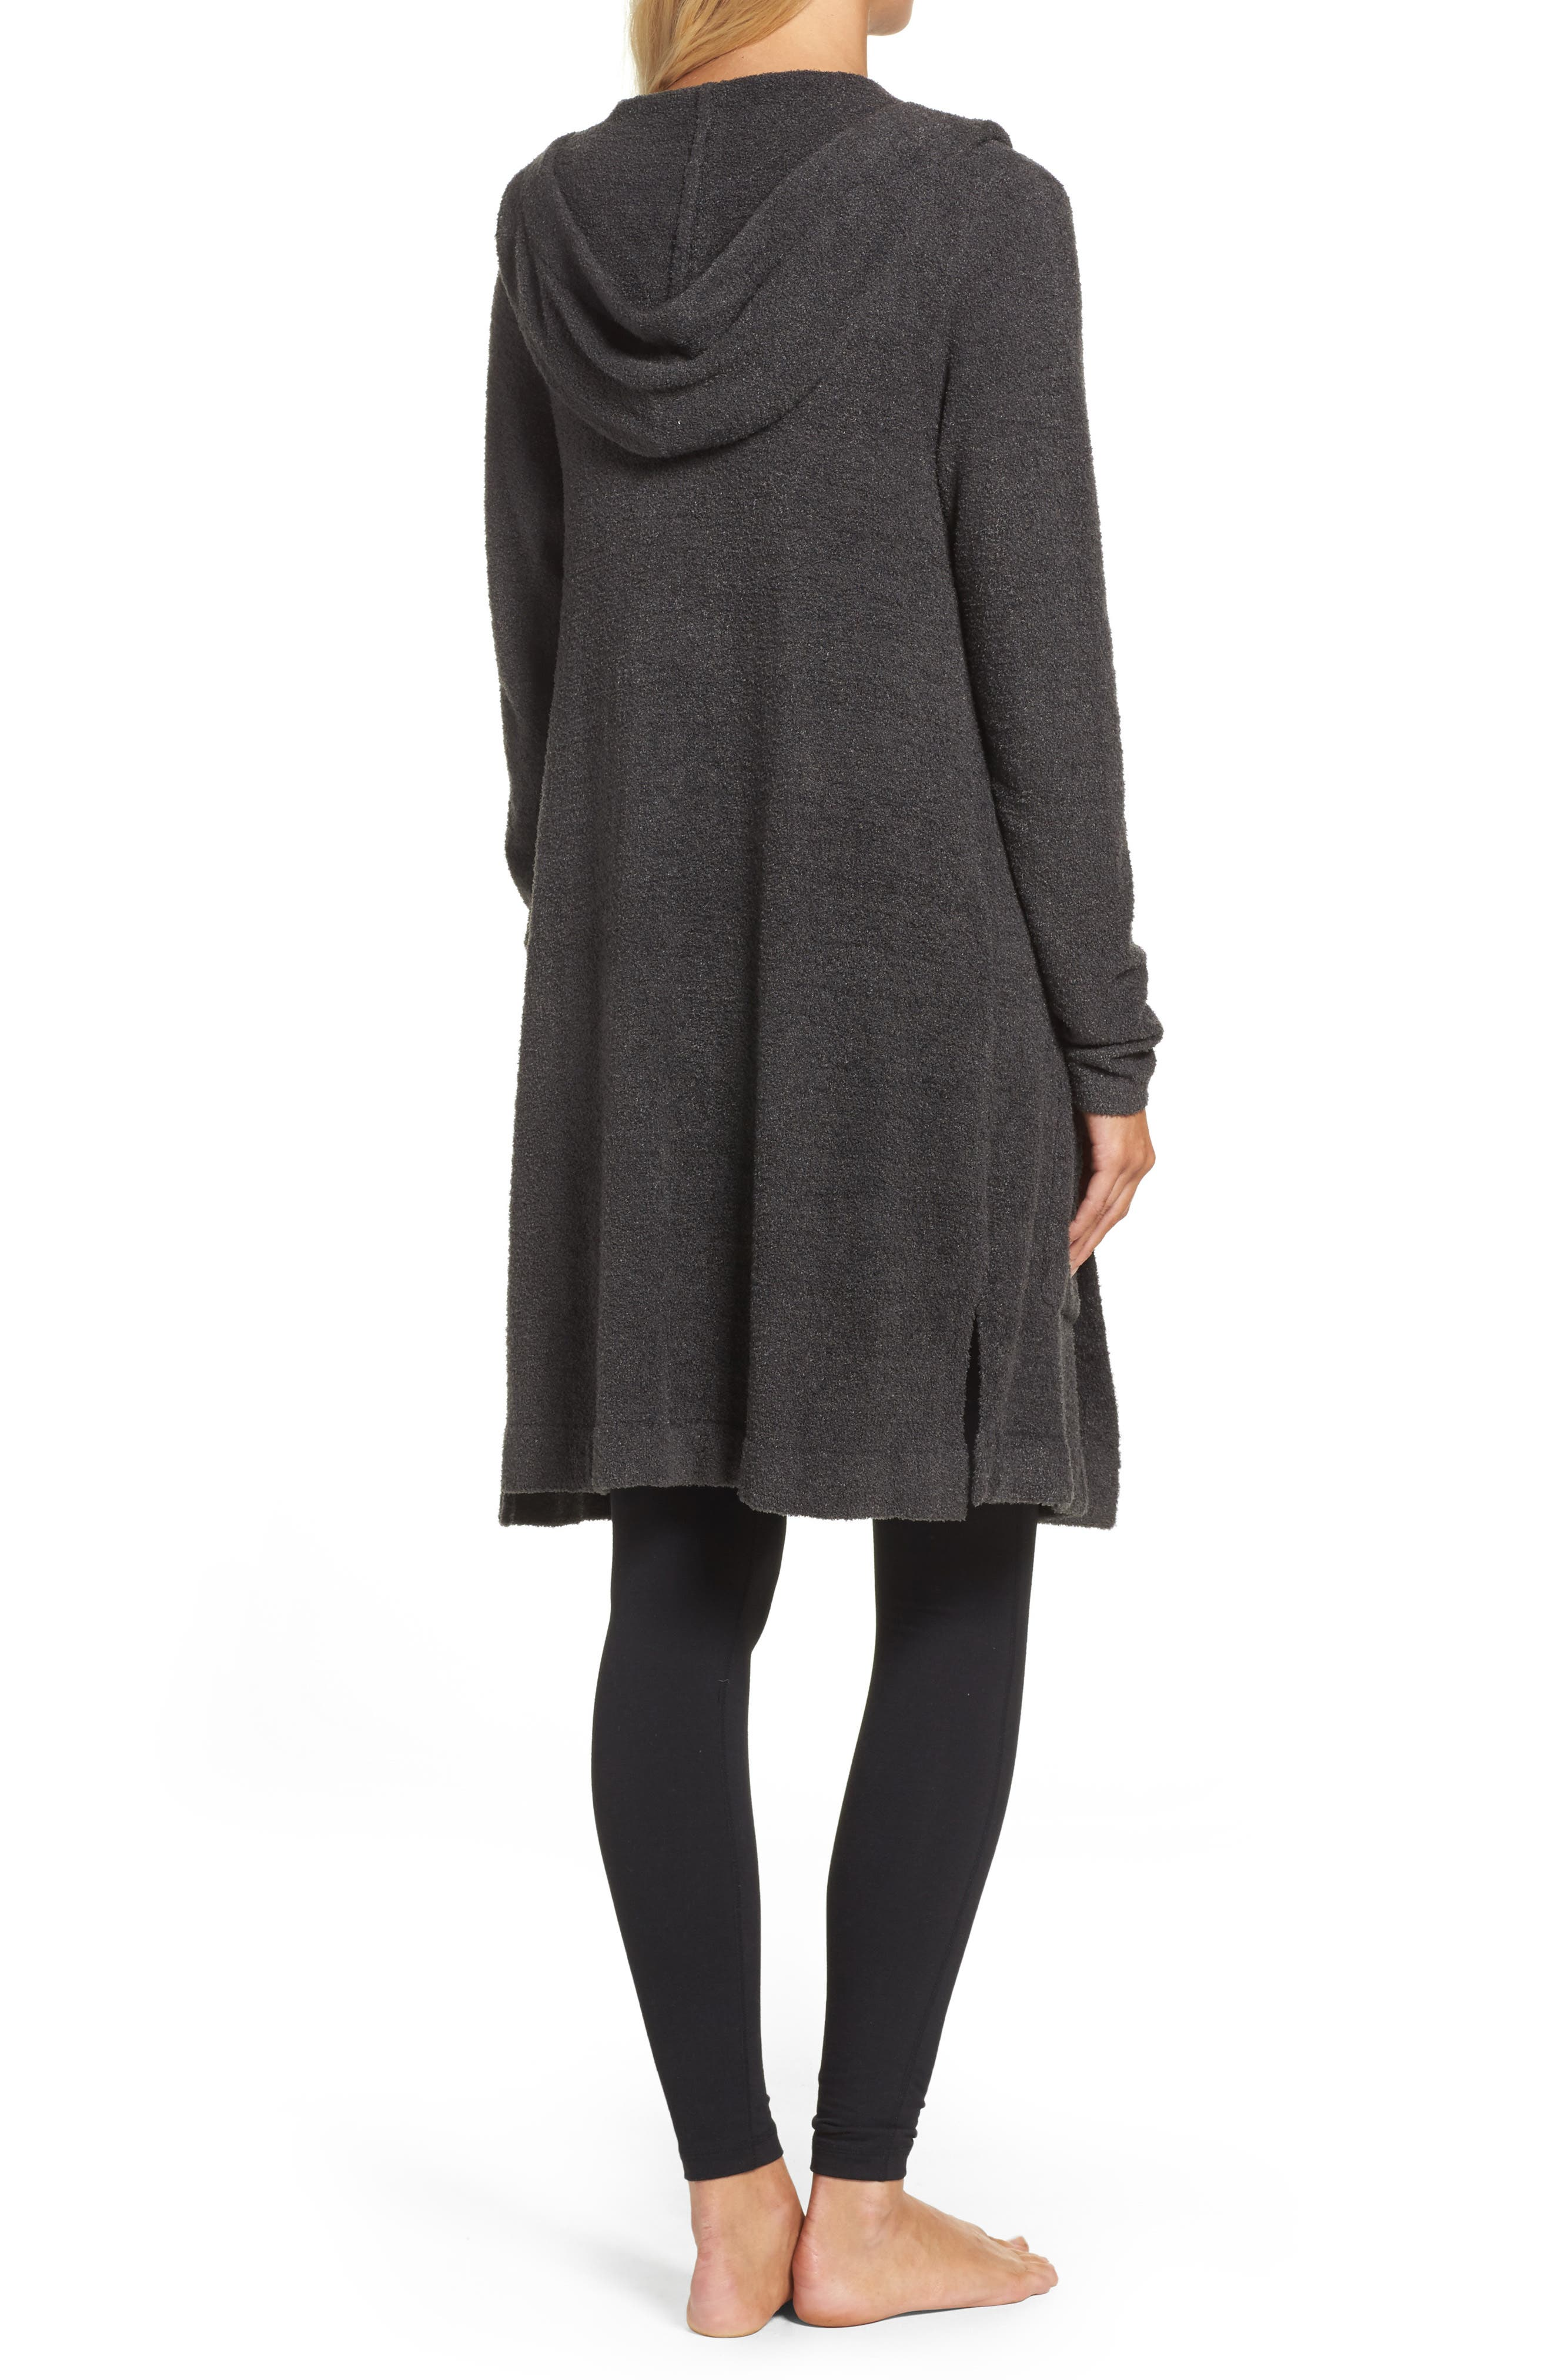 Cozychic Lite<sup>®</sup> Coastal Hooded Cardigan,                             Alternate thumbnail 2, color,                             Carbon